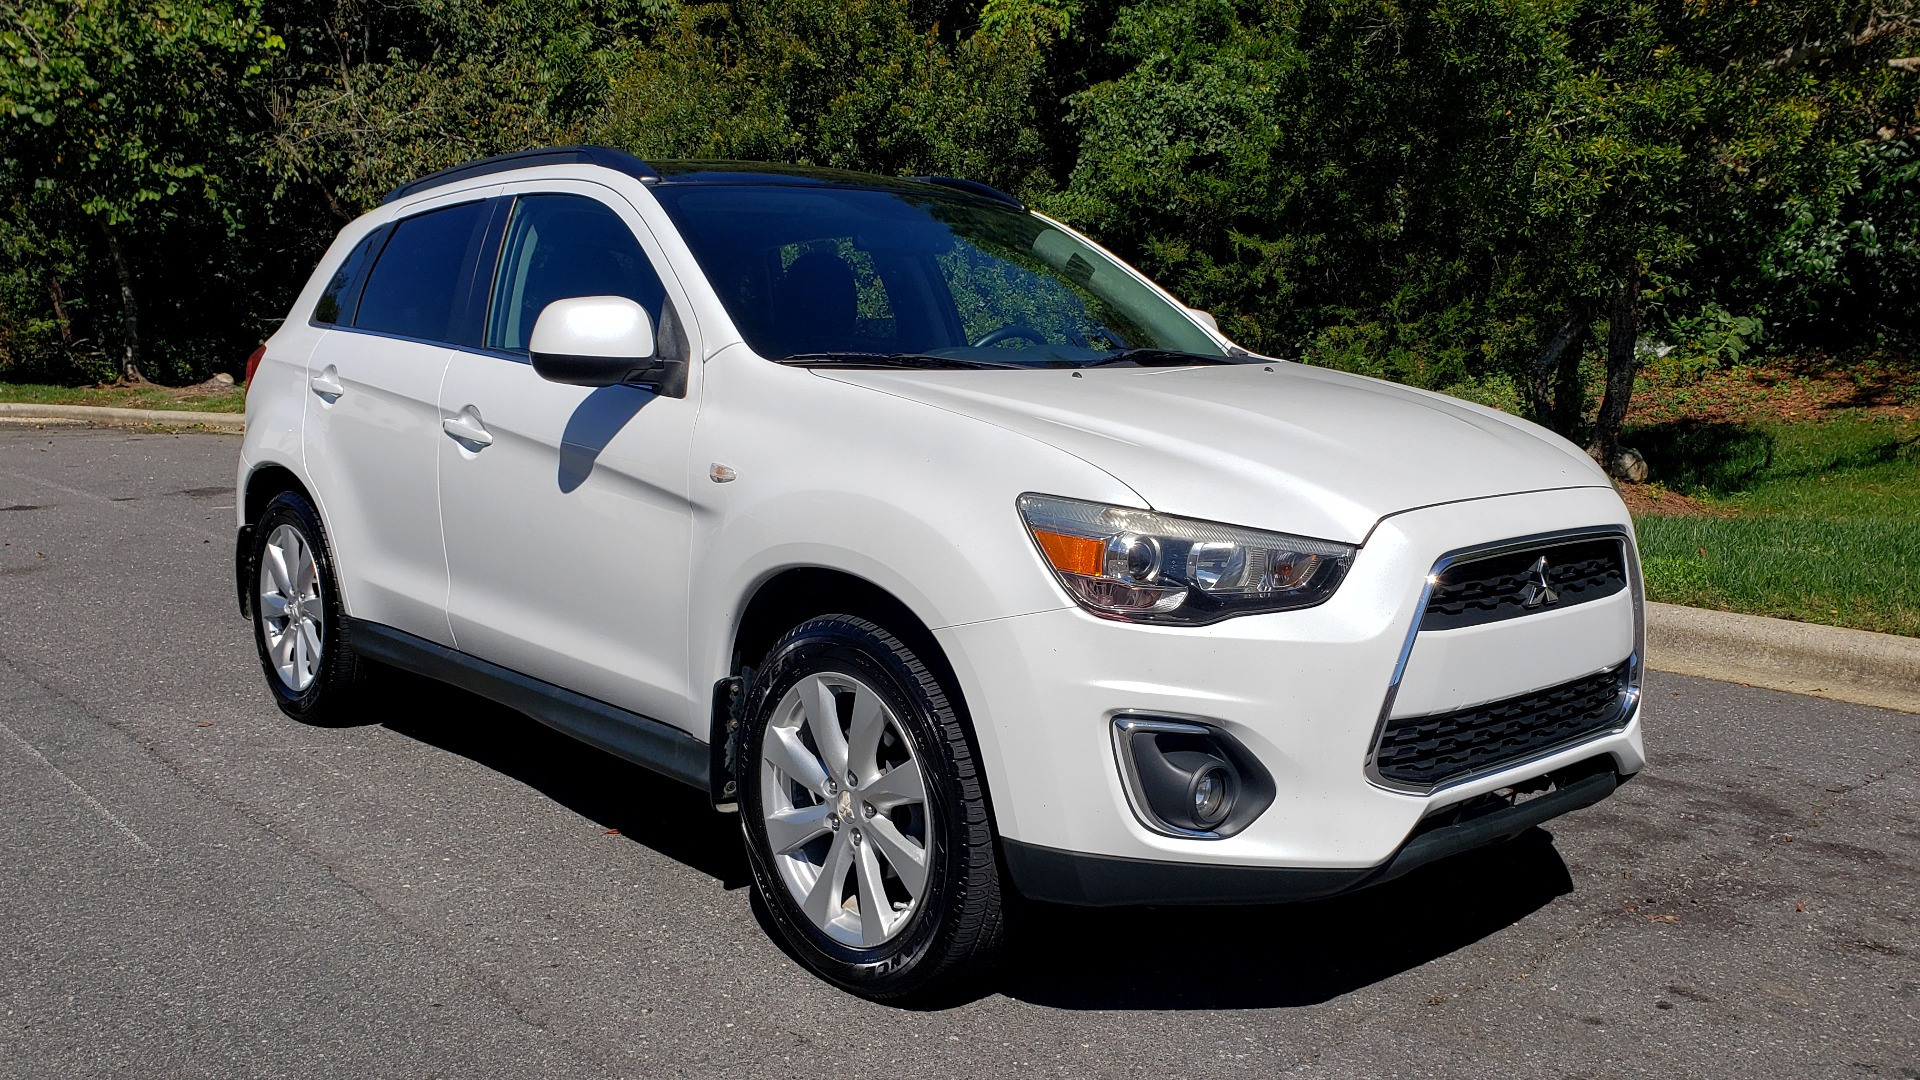 Used 2013 Mitsubishi OUTLANDER SPORT SE / 2WD / 4-DR SUV / CVT TRANS / PREMIUM SOUND / REARVIEW for sale $8,695 at Formula Imports in Charlotte NC 28227 4